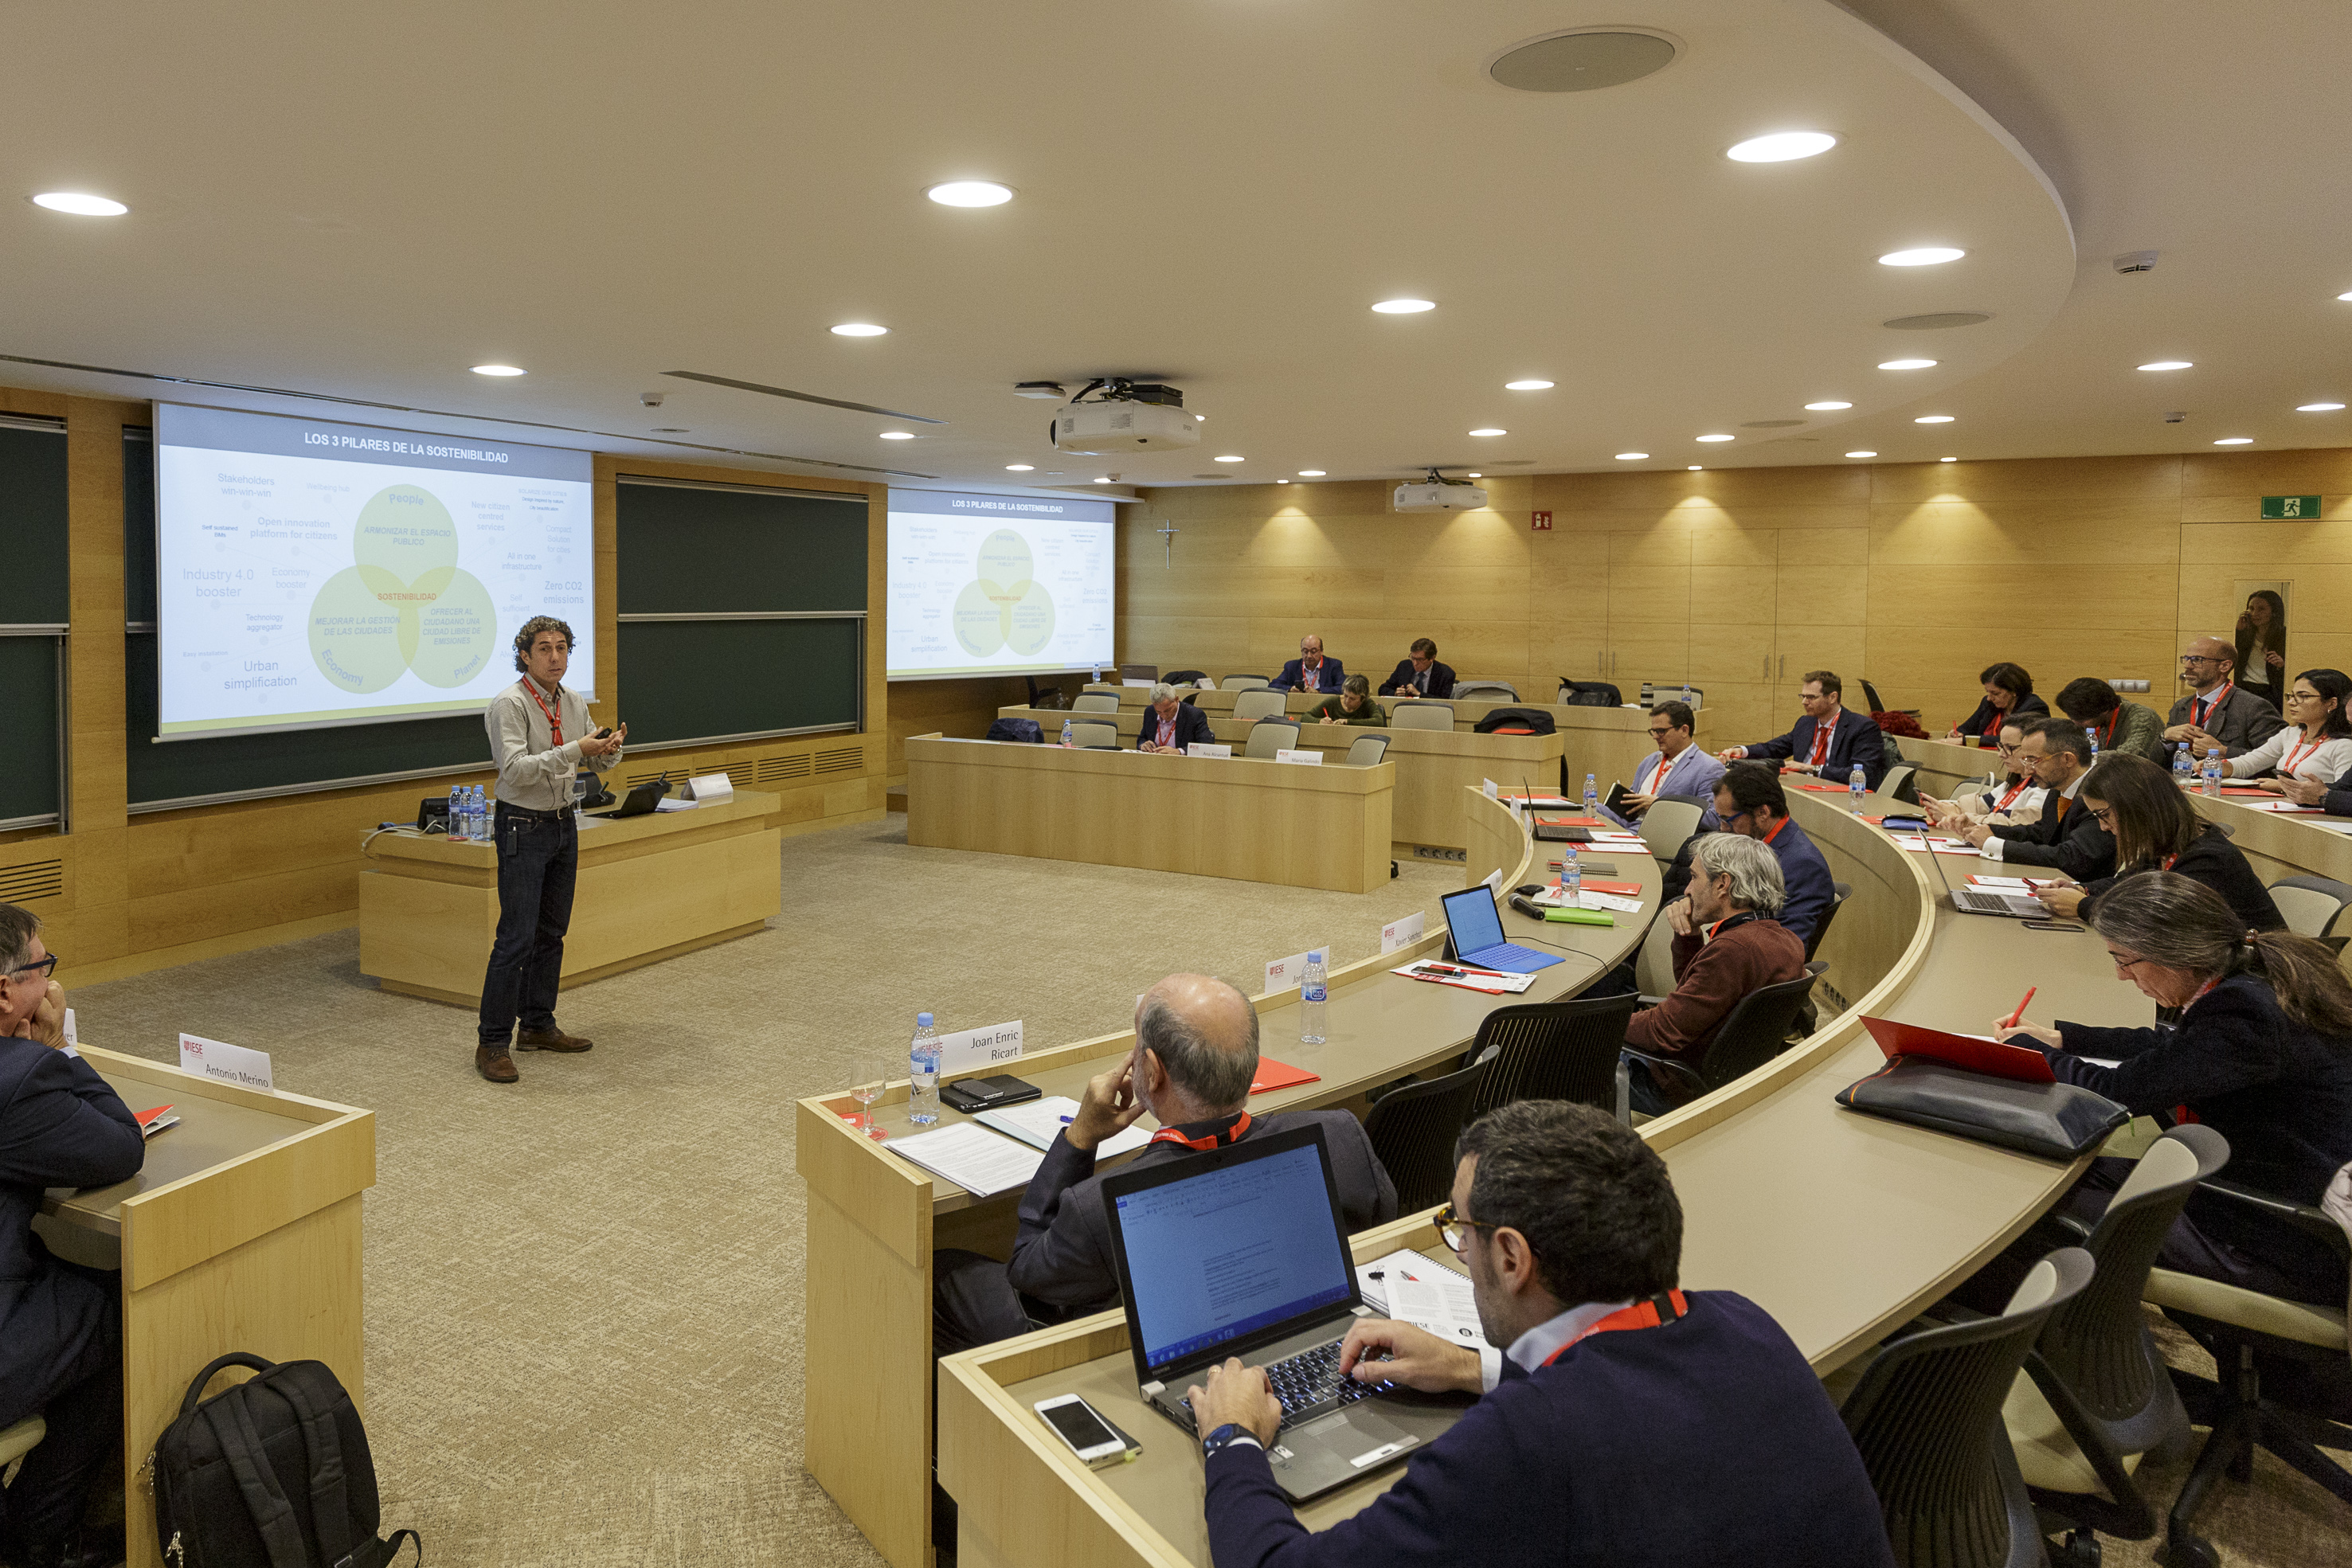 The prestigious business school IESE invites SIARQ to talk about smart solar solutions